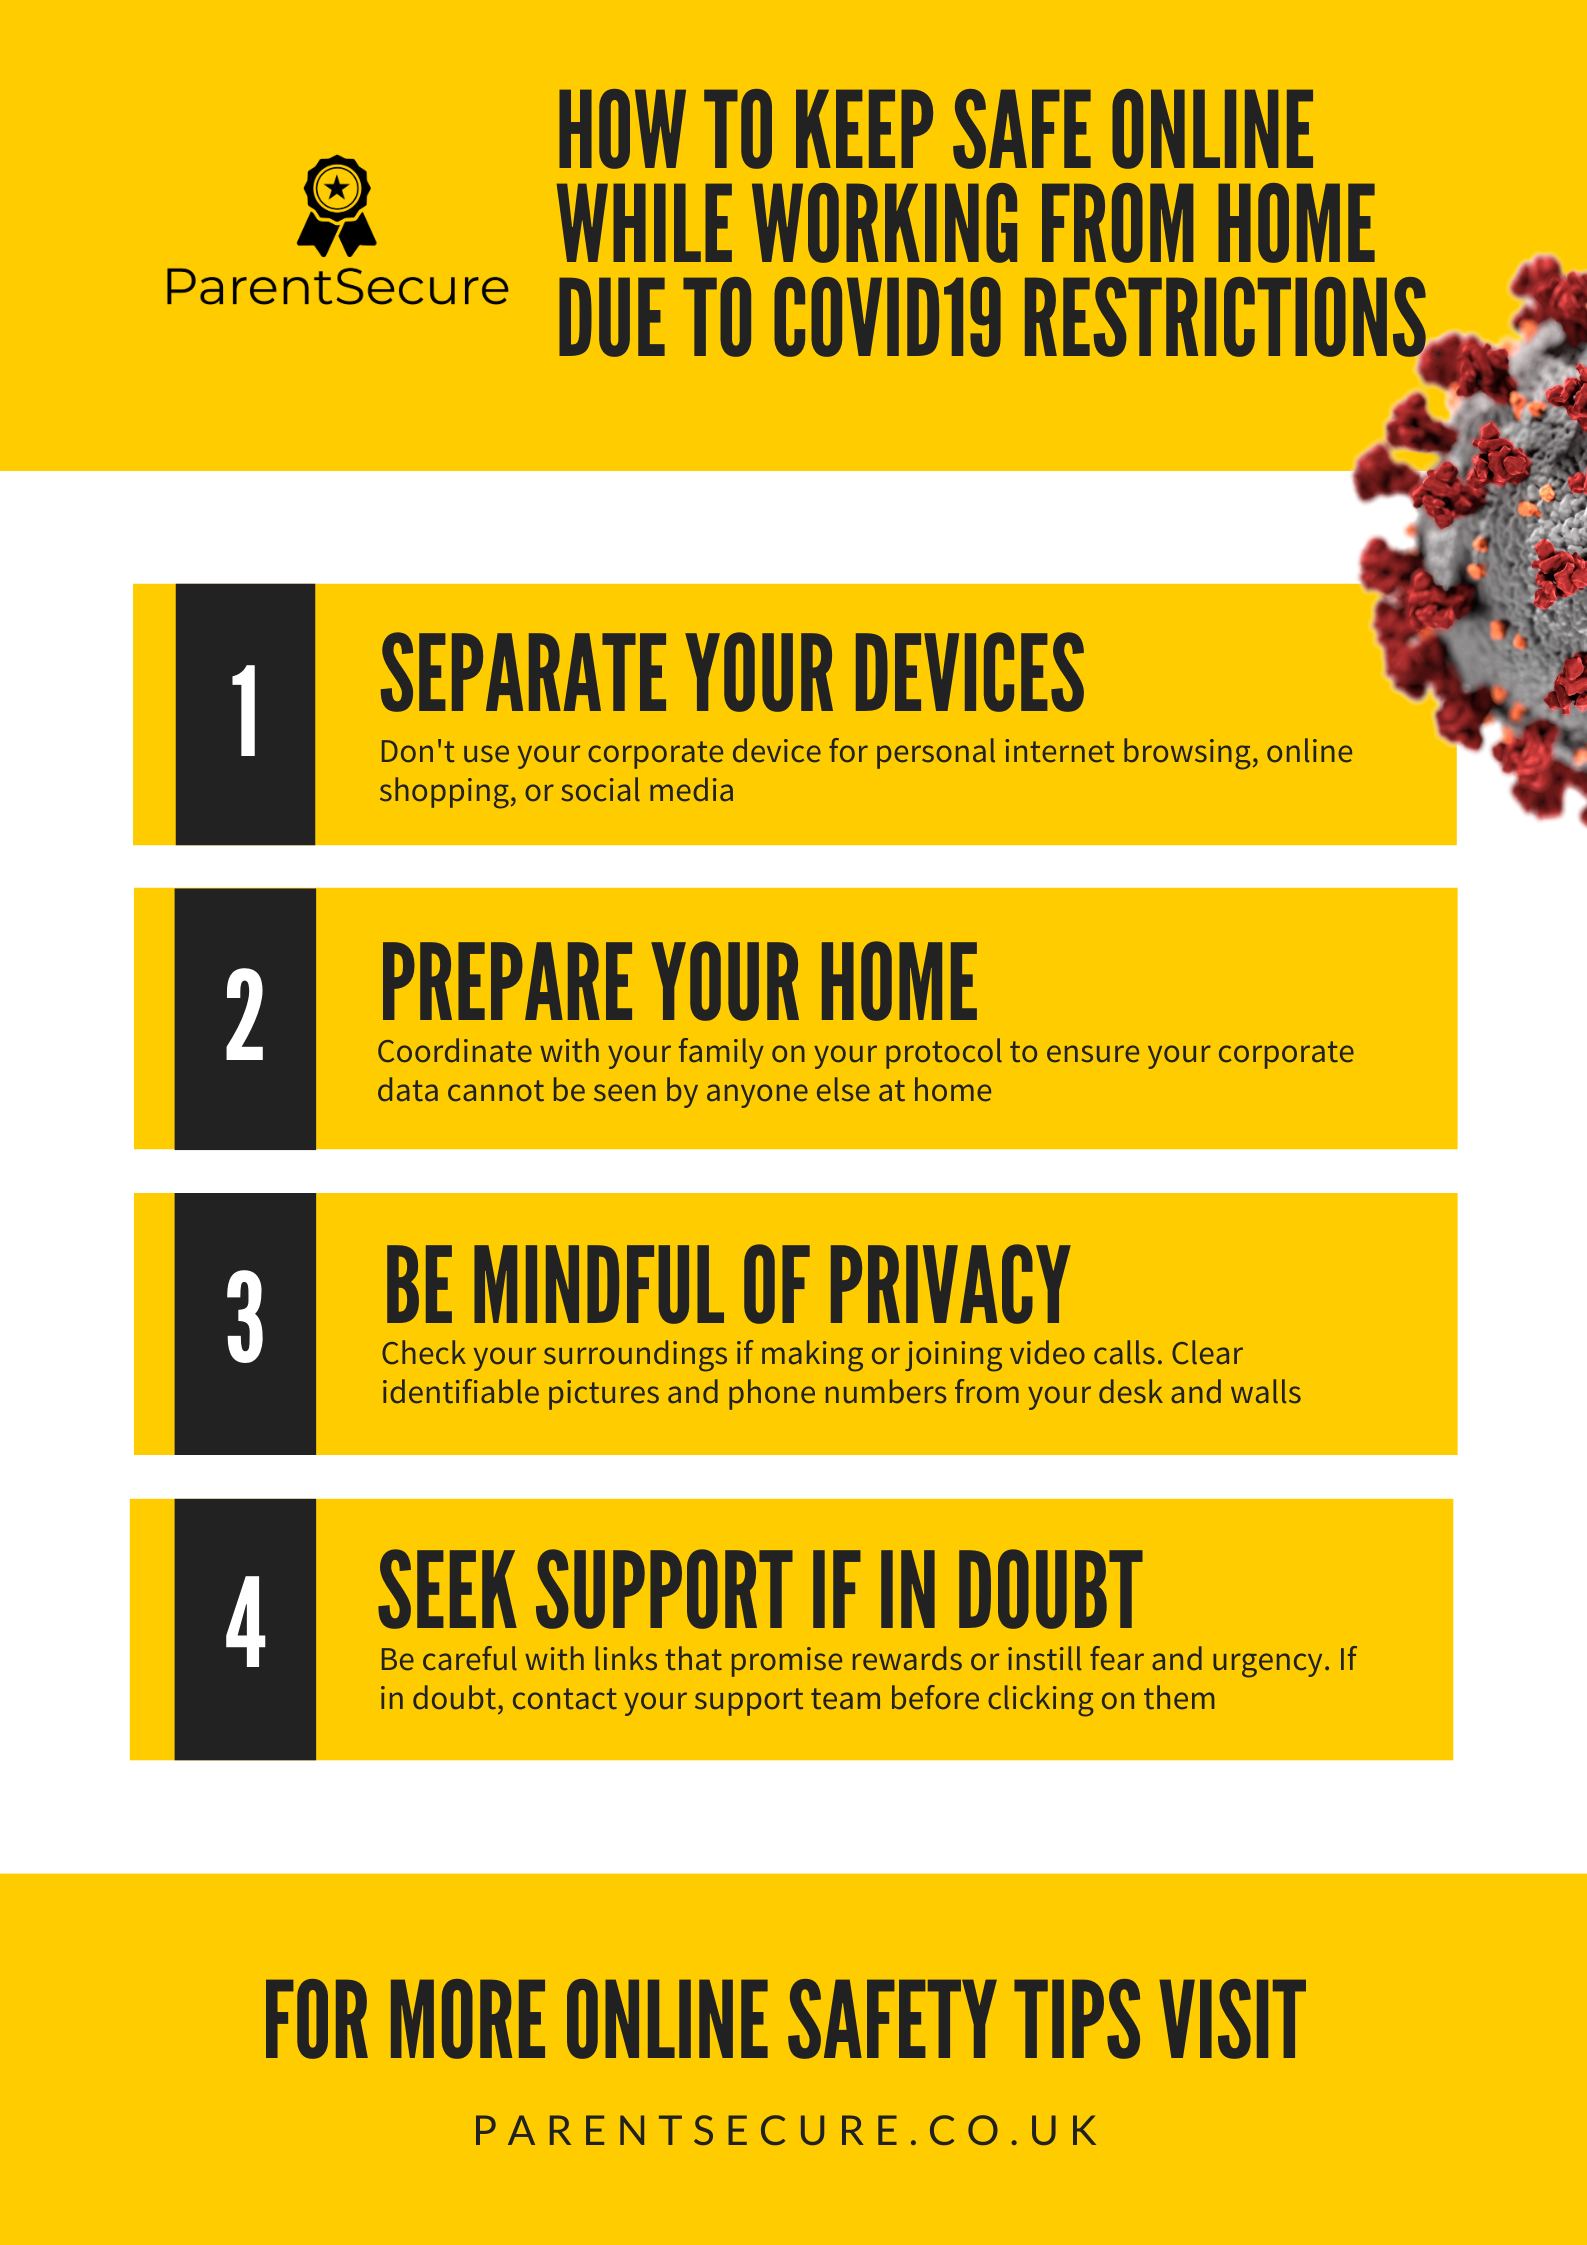 PS-COVID19-Remote-Working-Online-Safety-Tips